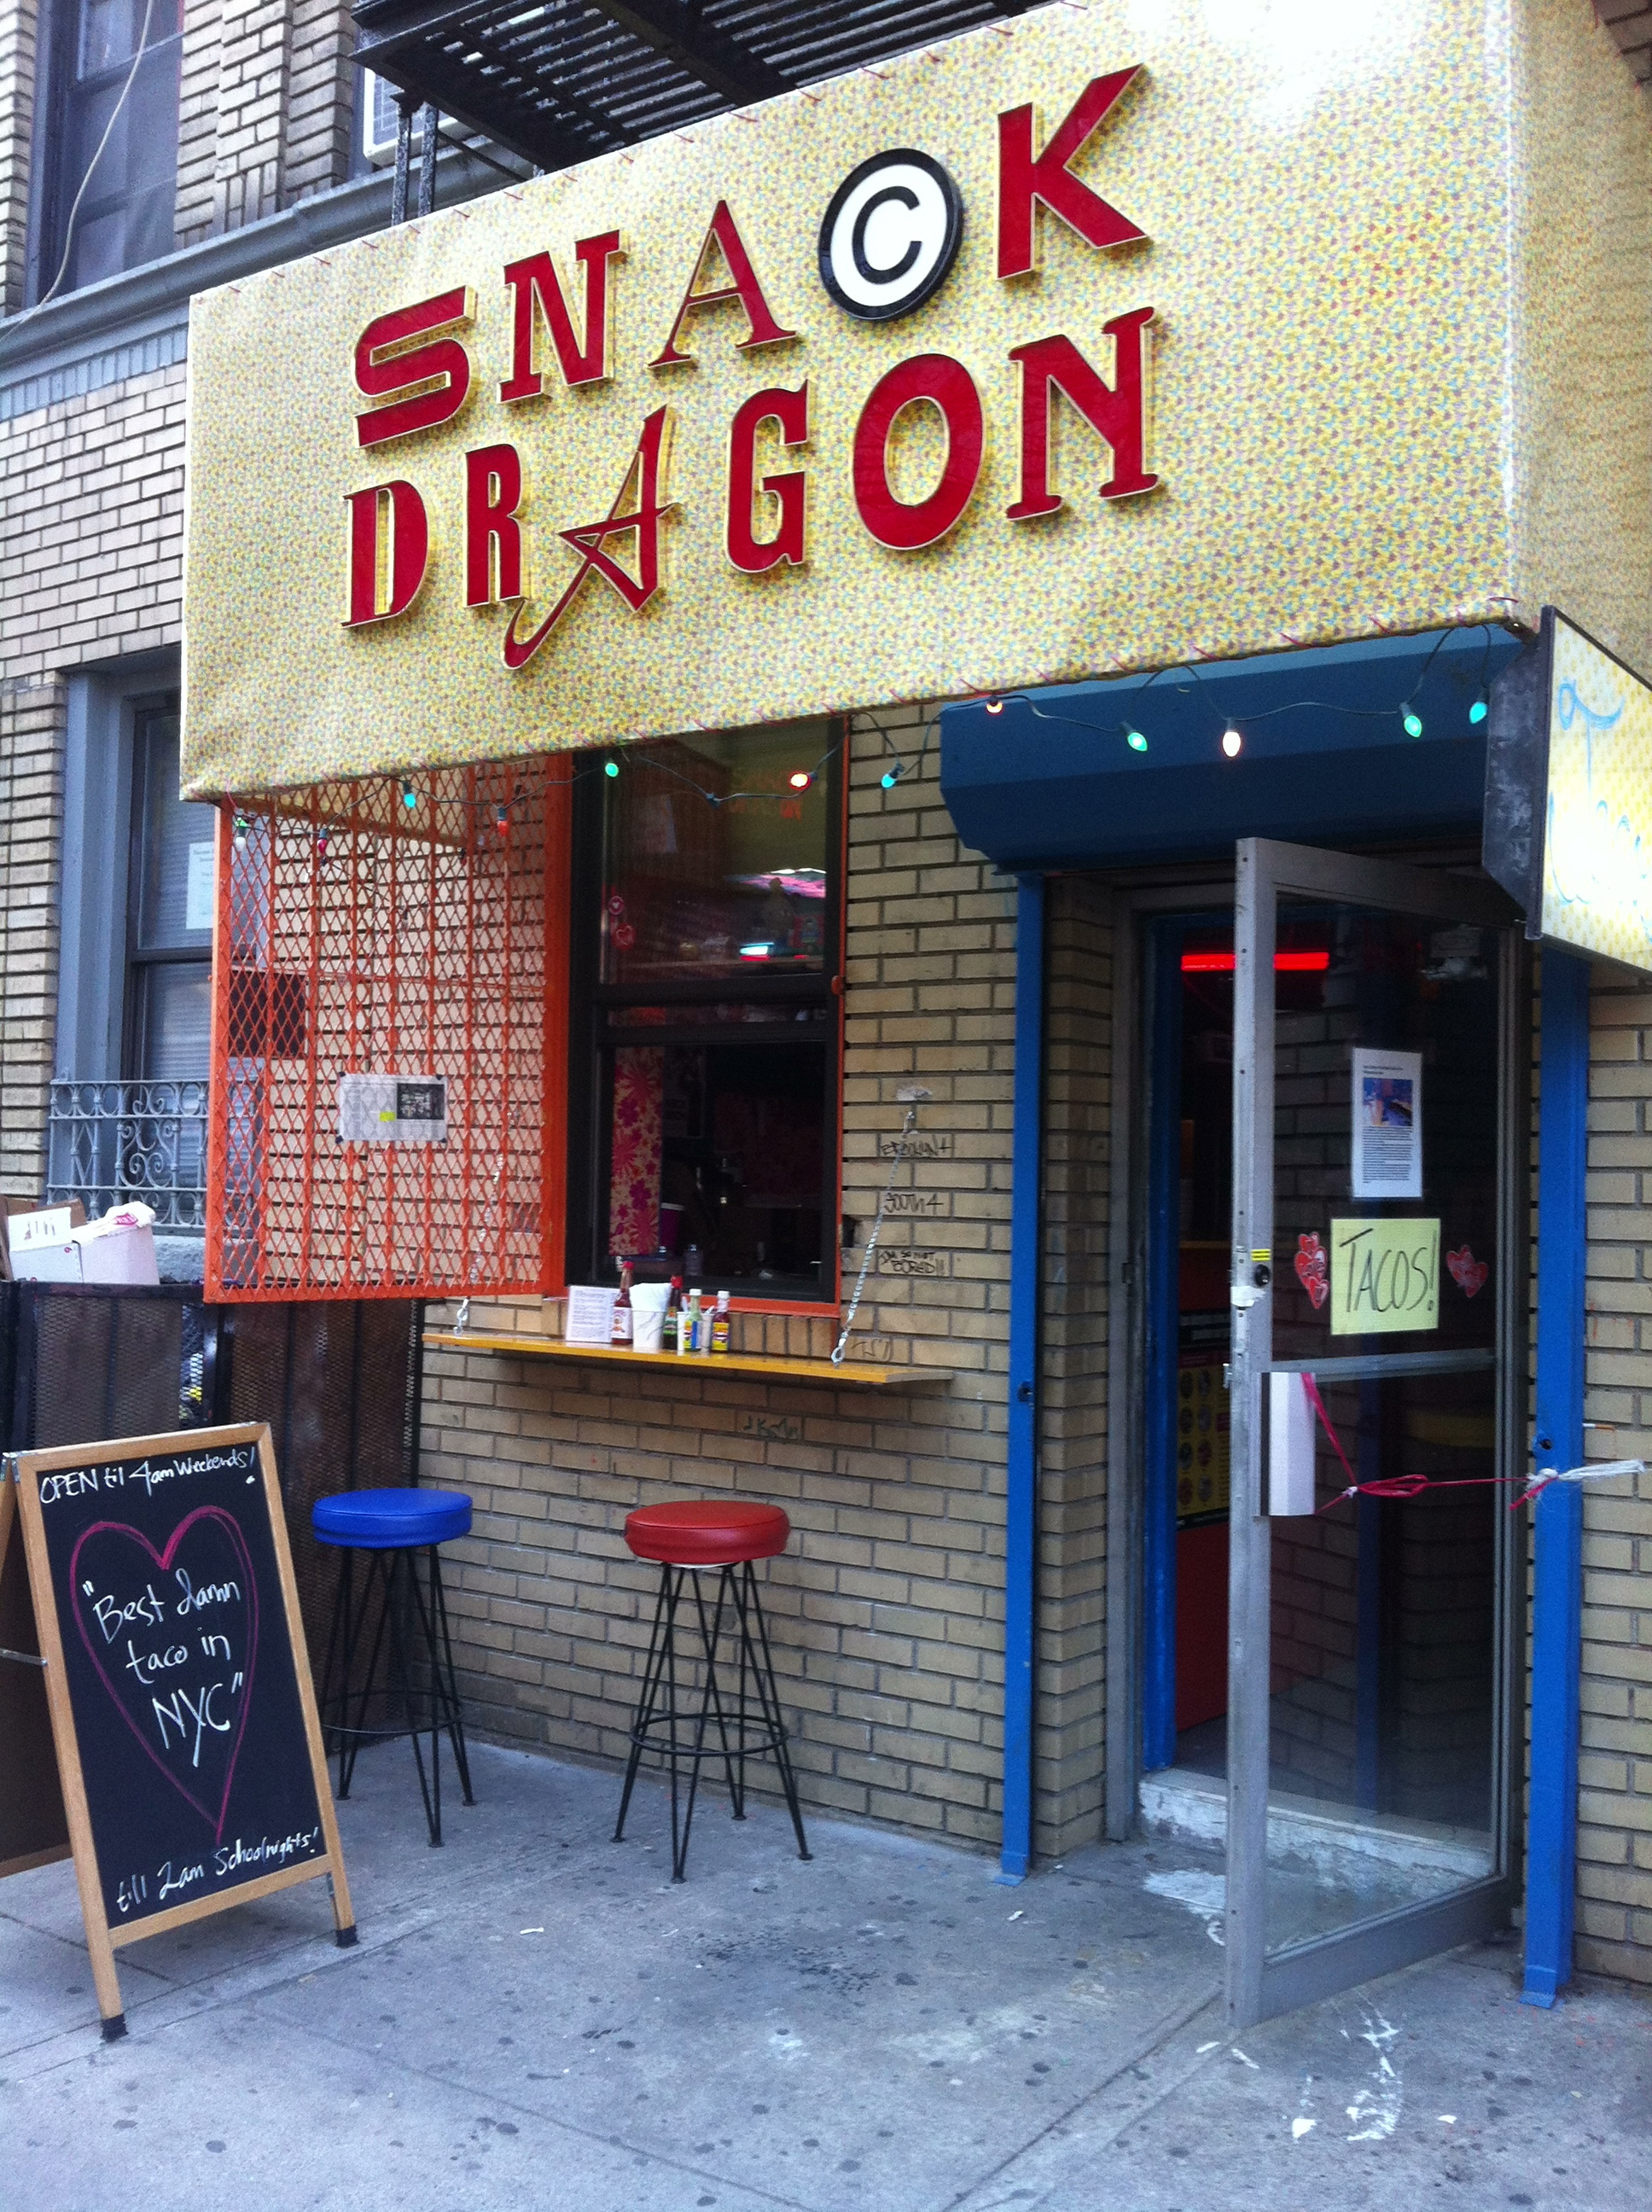 Snack Dragon, an East Village favorite for late-night tacos, opened a taco shack in Williamsburg back in February on S. 4th Street. Photo: Daniel Broadhurst